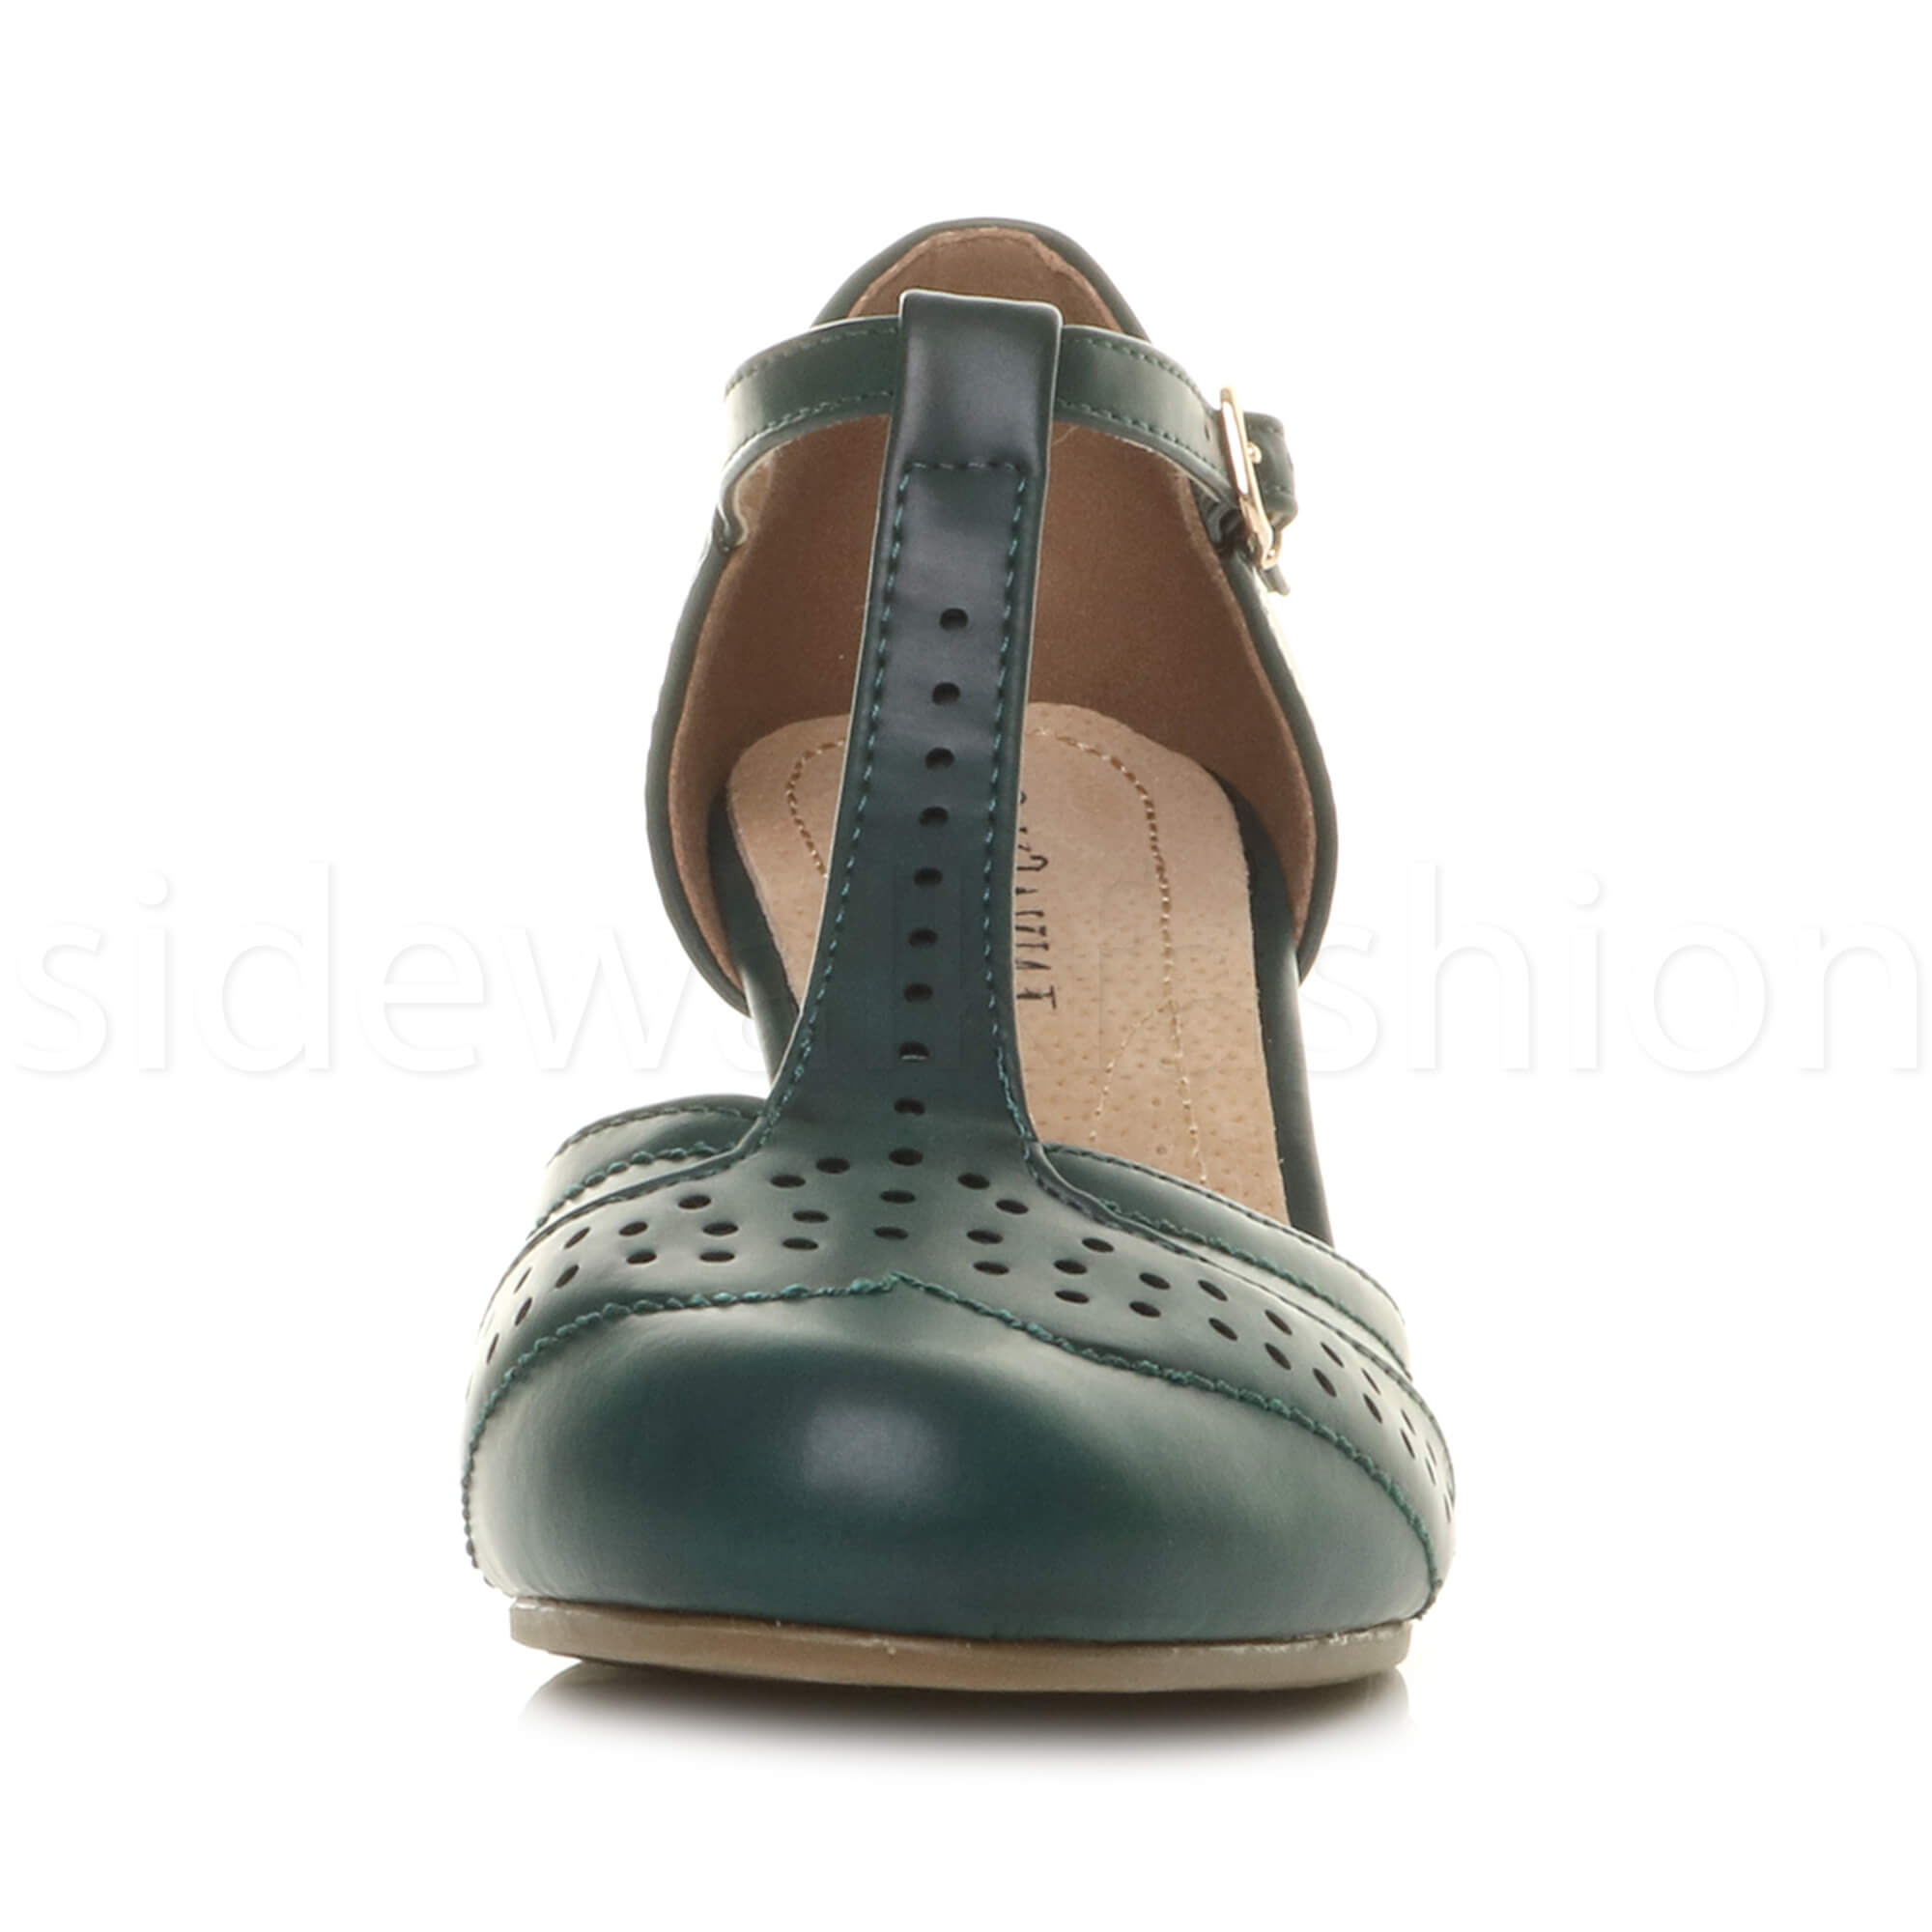 Womens-ladies-block-low-mid-heel-smart-work-Mary-Jane-T-bar-brogue-court-shoes thumbnail 28